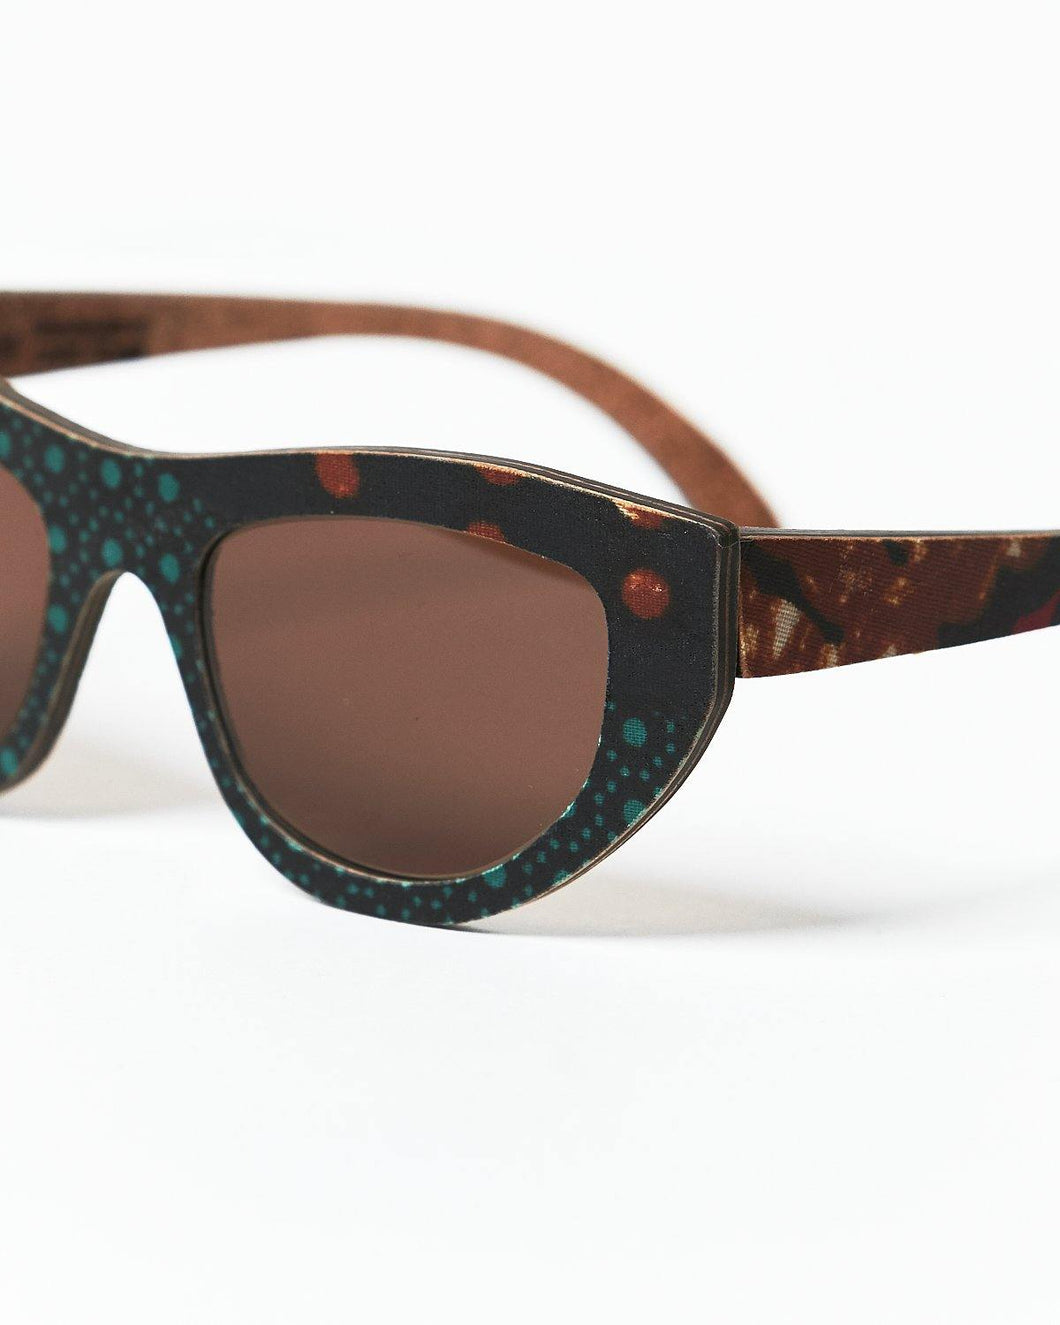 BALLO COSMO Sunglasses in Brown African Fabric